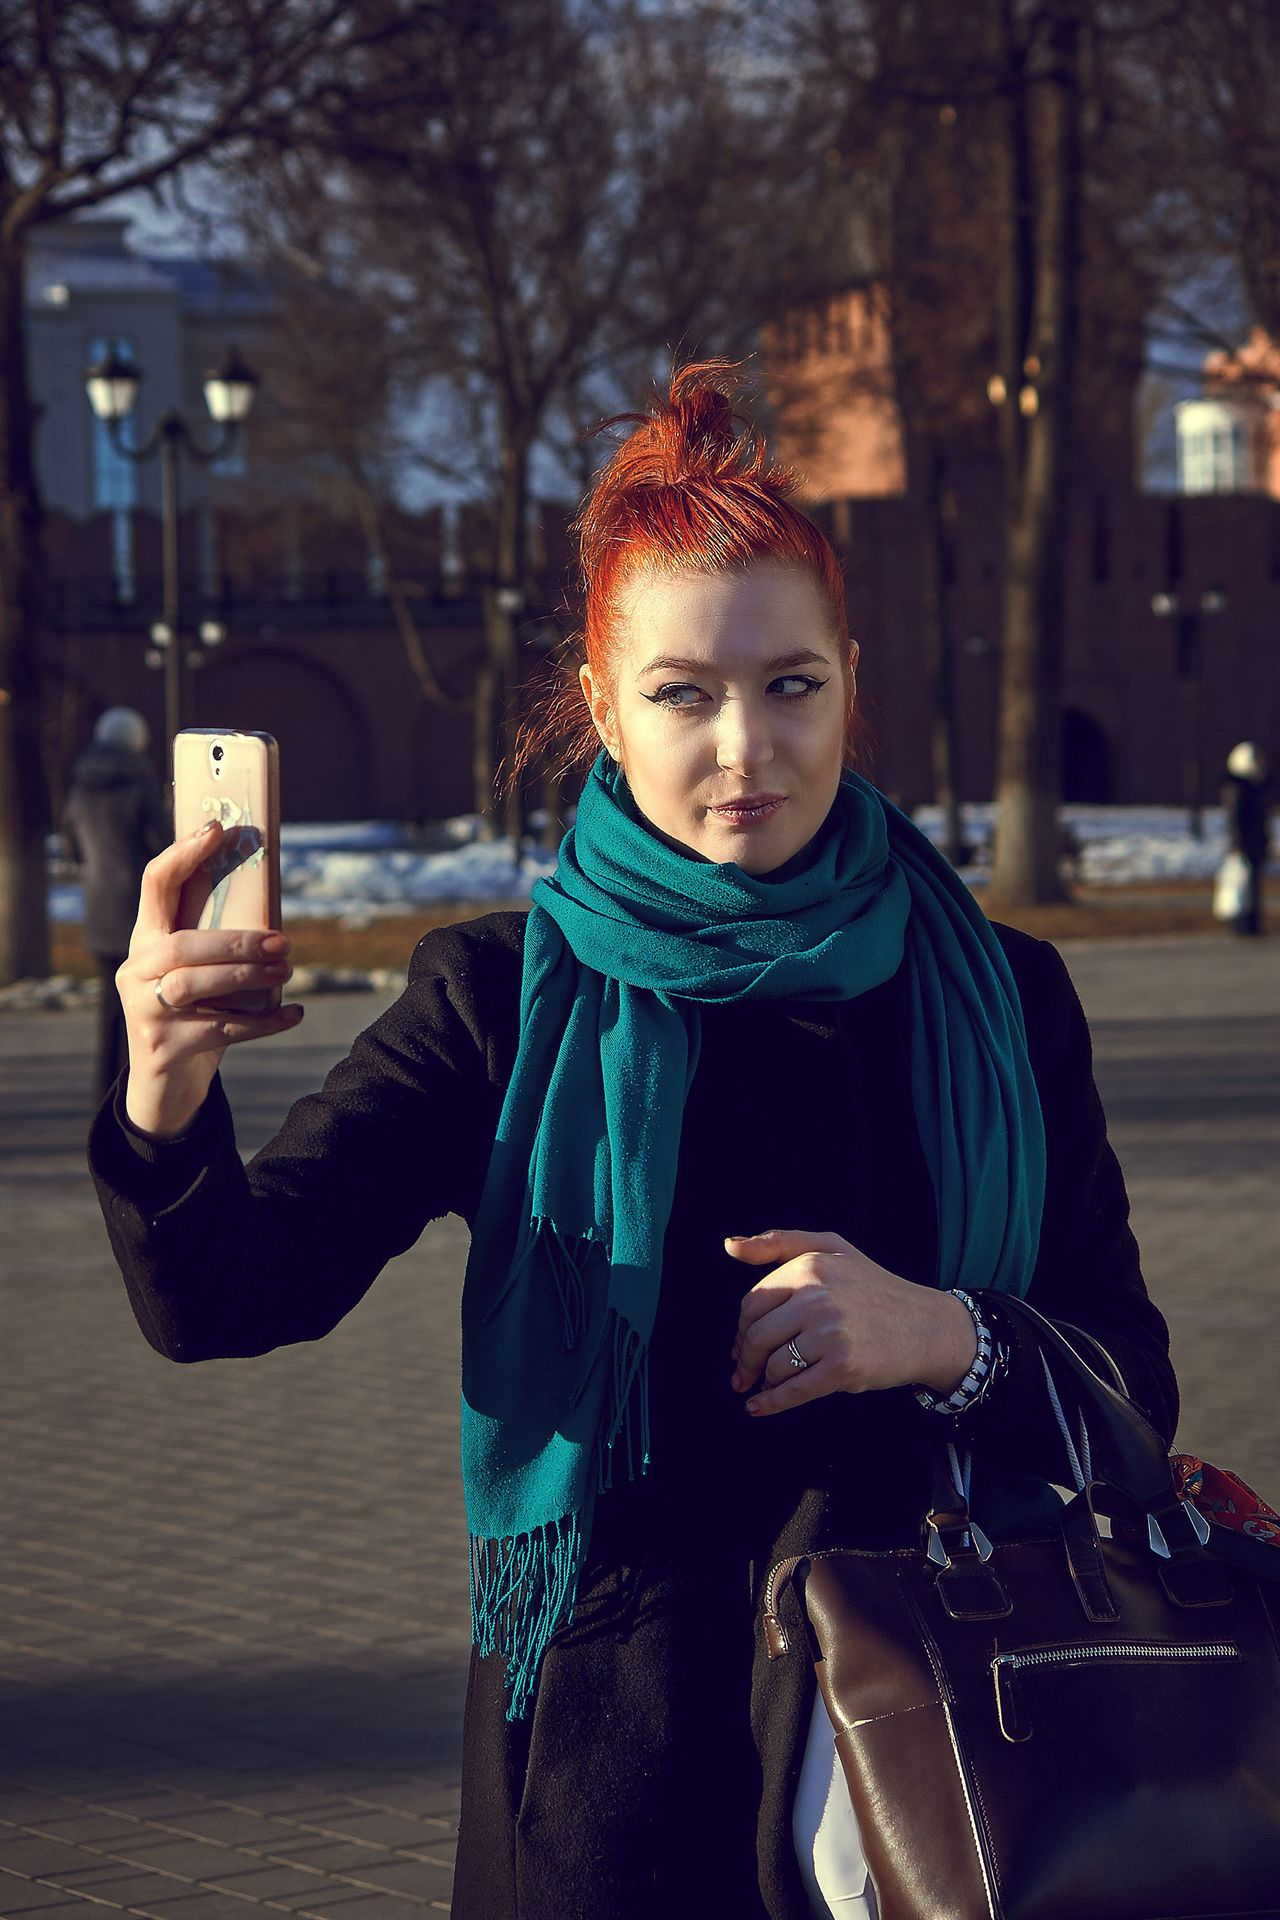 Russia Wireless Technology Portable Information Device Smart Phone Technology Communication Child Portrait Outdoors Focus On Foreground Selfie Photography Themes Building Exterior Tree Photo Messaging People Children Only Lifestyles Warm Clothing One Person Winter Mobile Conversations